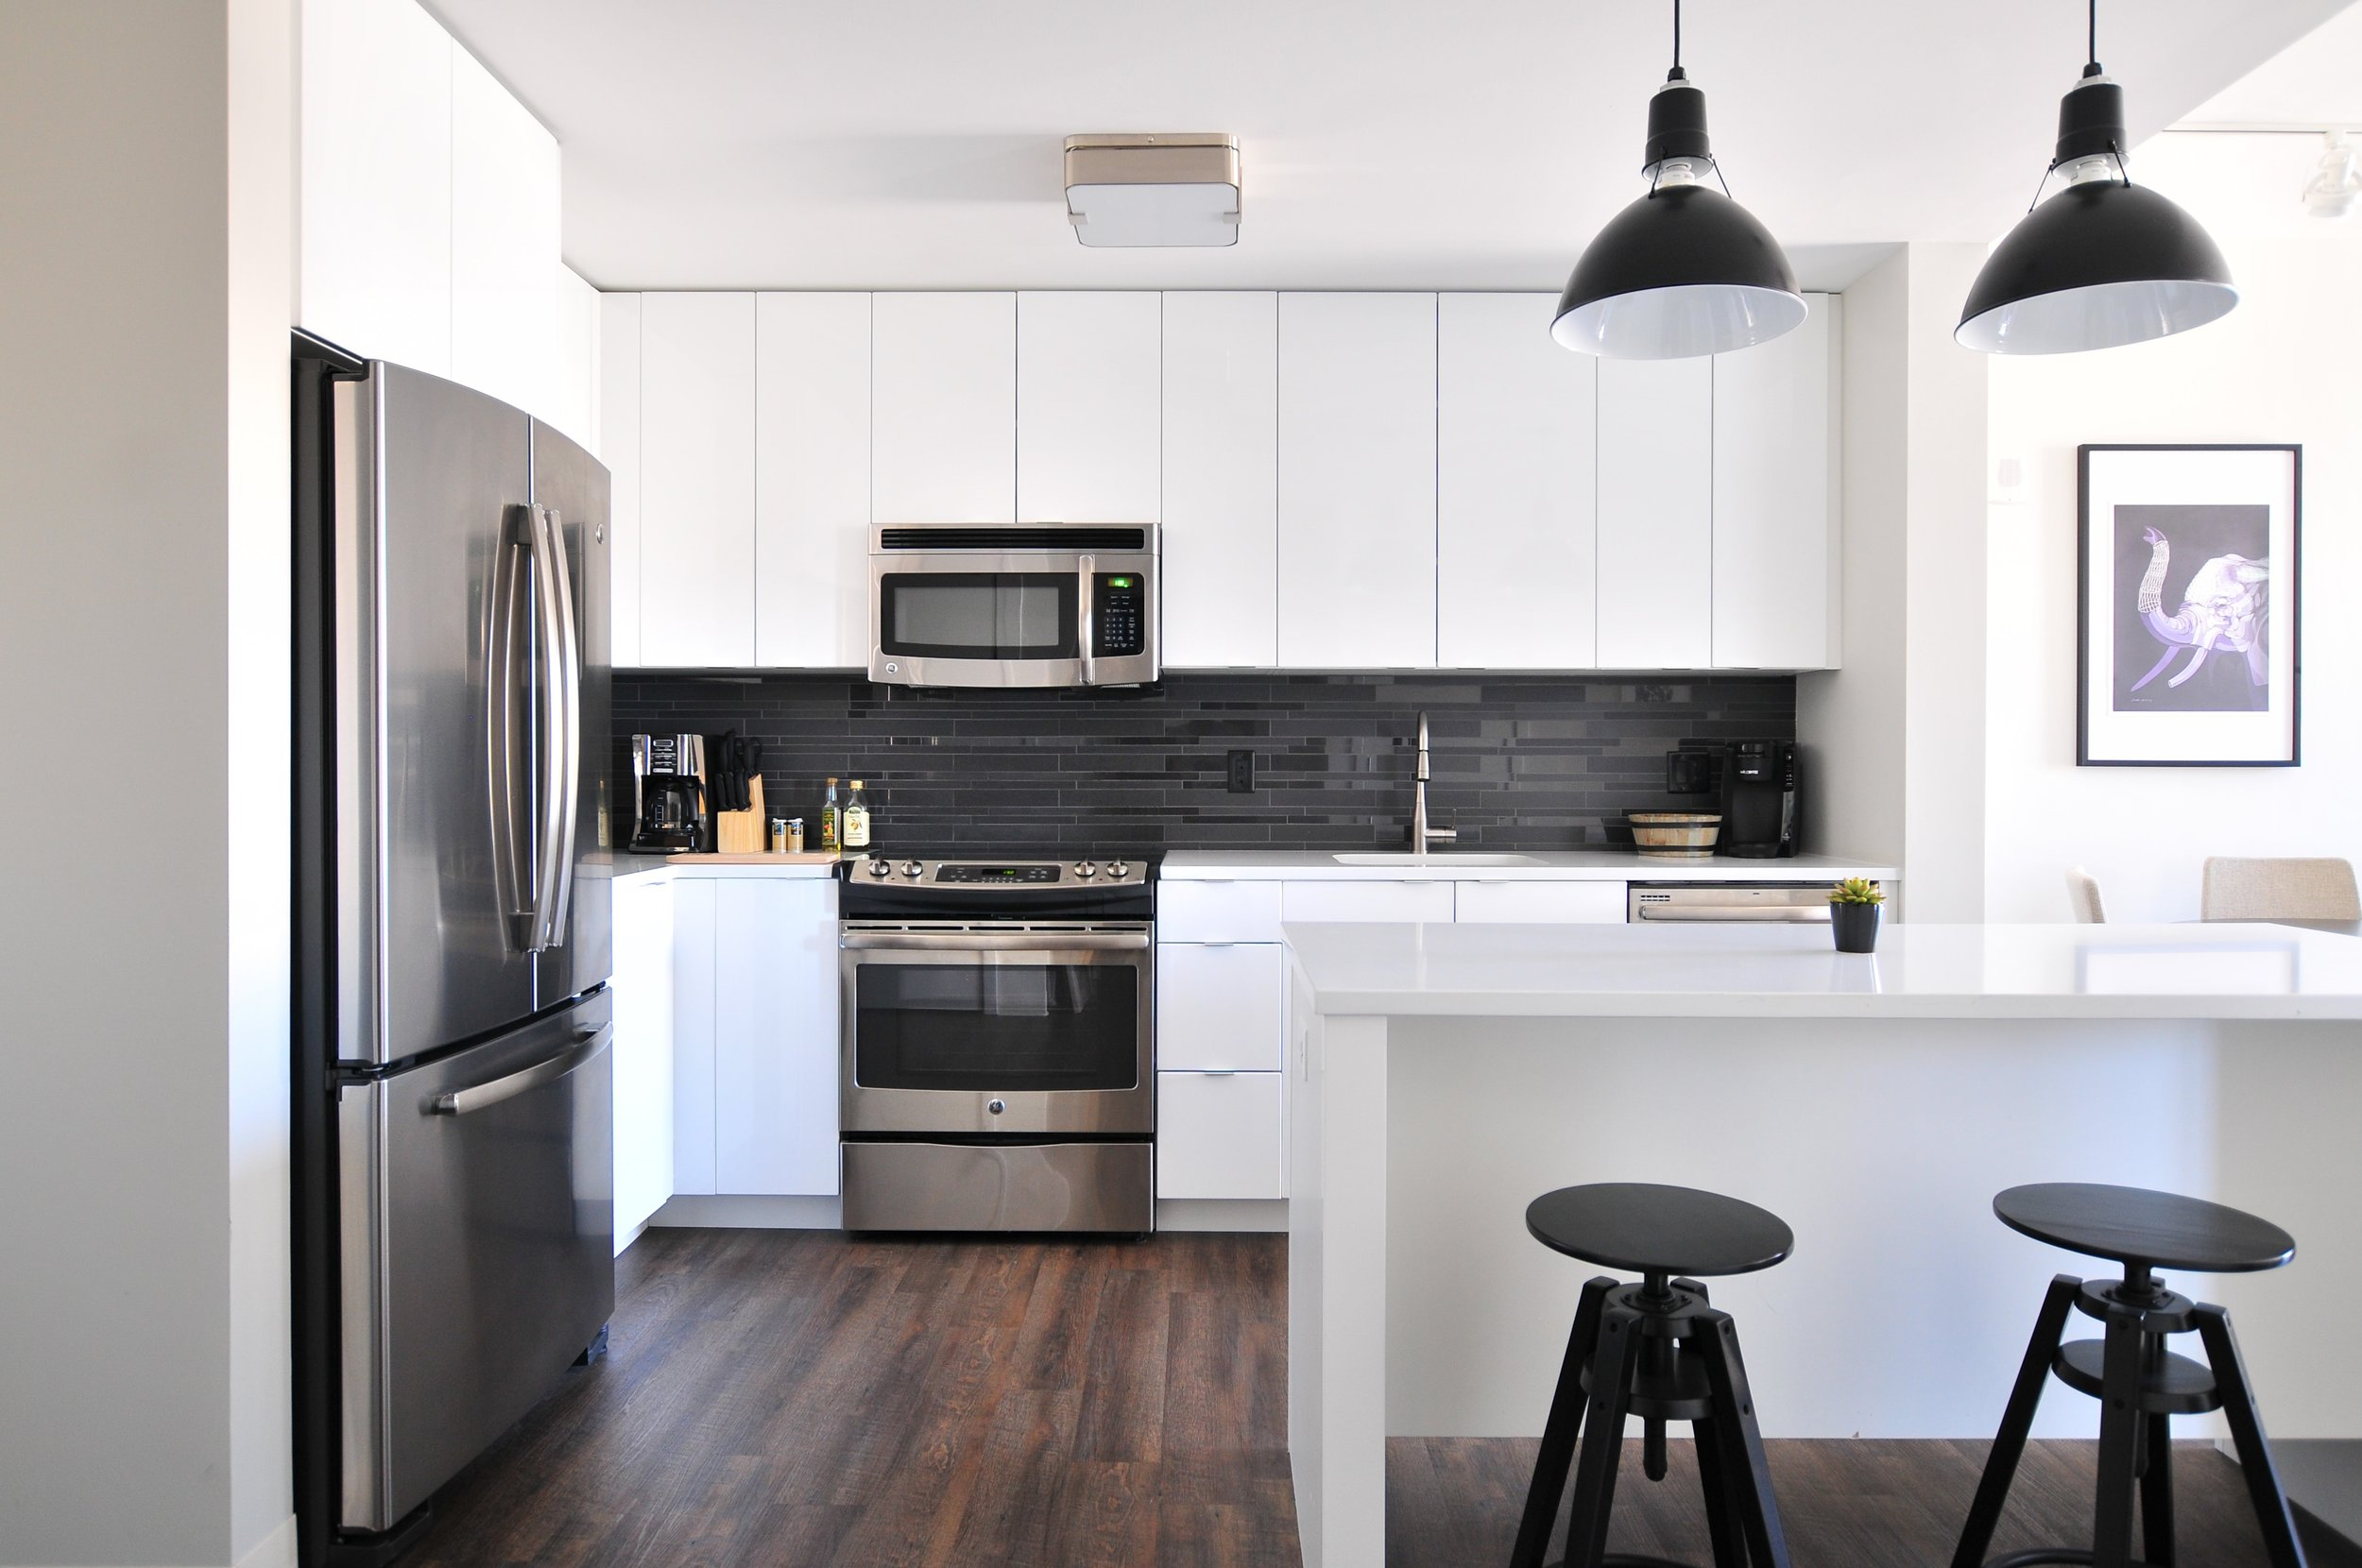 Simple clean lines accent this kitchen. Flat panel white cabinet doors without handles create a sleek look. Black accent tile for the backsplash combined with other black accents in the kitchen (light fixtures and stools) create a beautiful contemporary look.